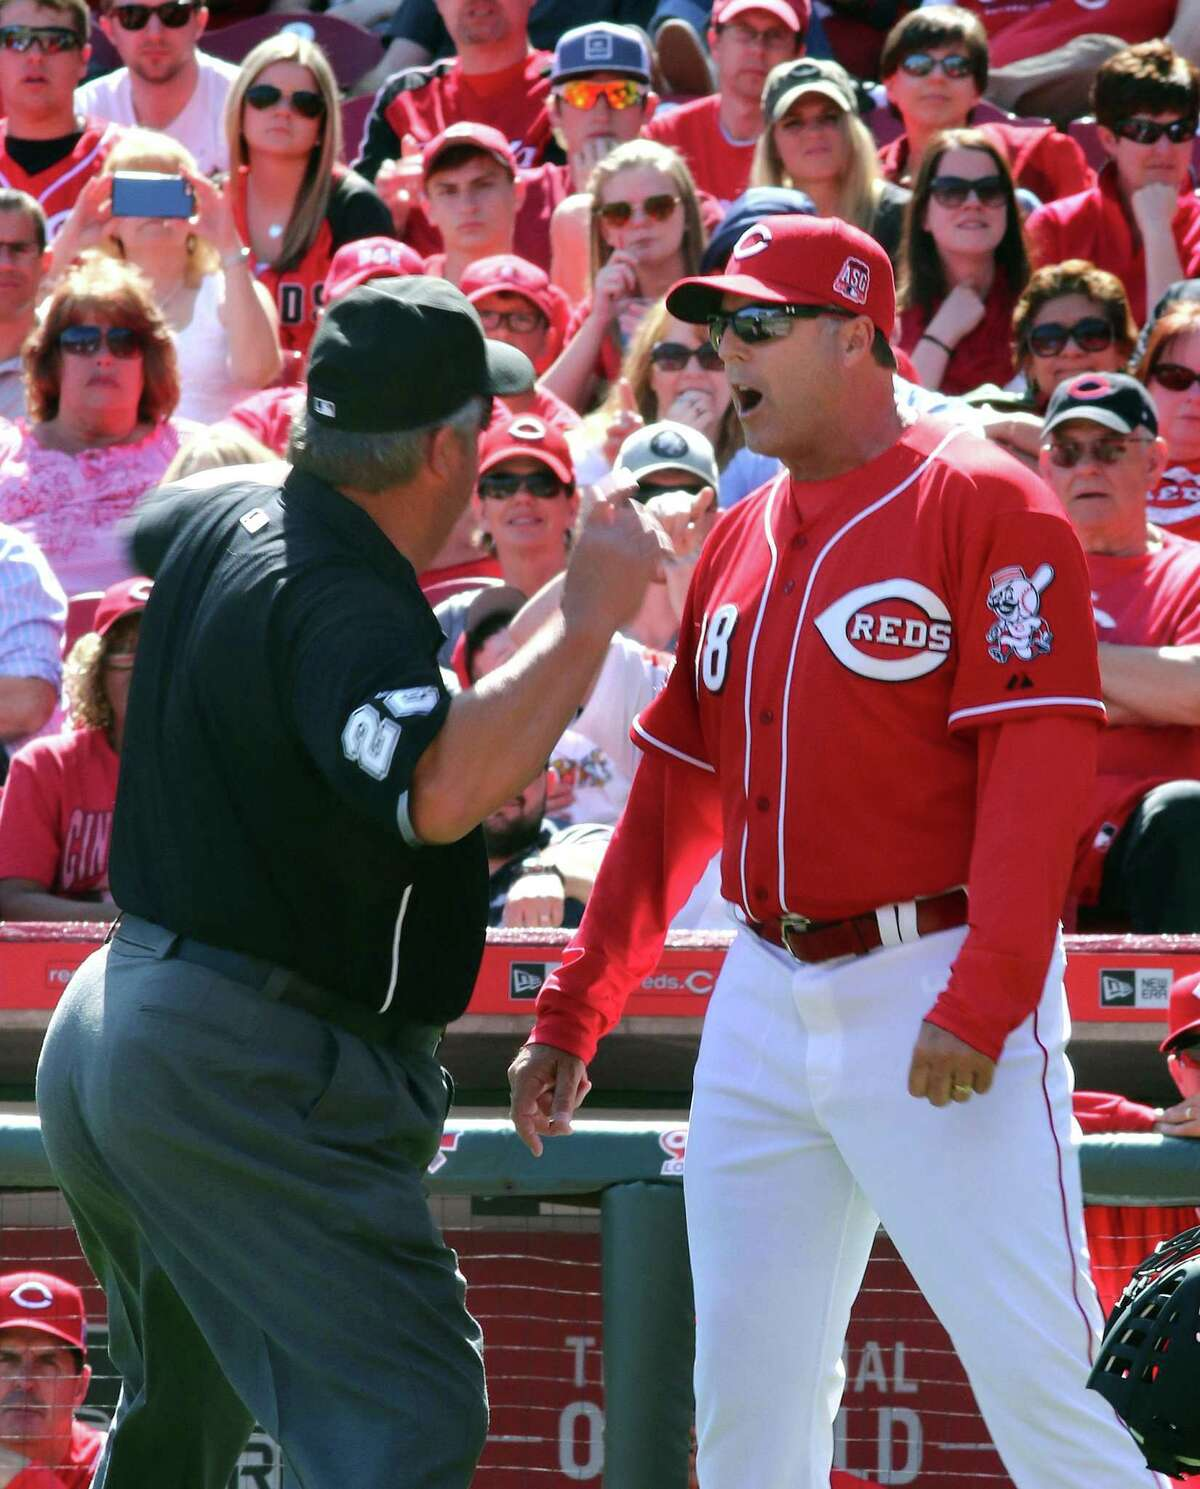 Cincinnati Reds manager Bryan Price went on a profanity-filled rant during his pregame meeting with media on Monday, taking exception with the way his team was being covered.